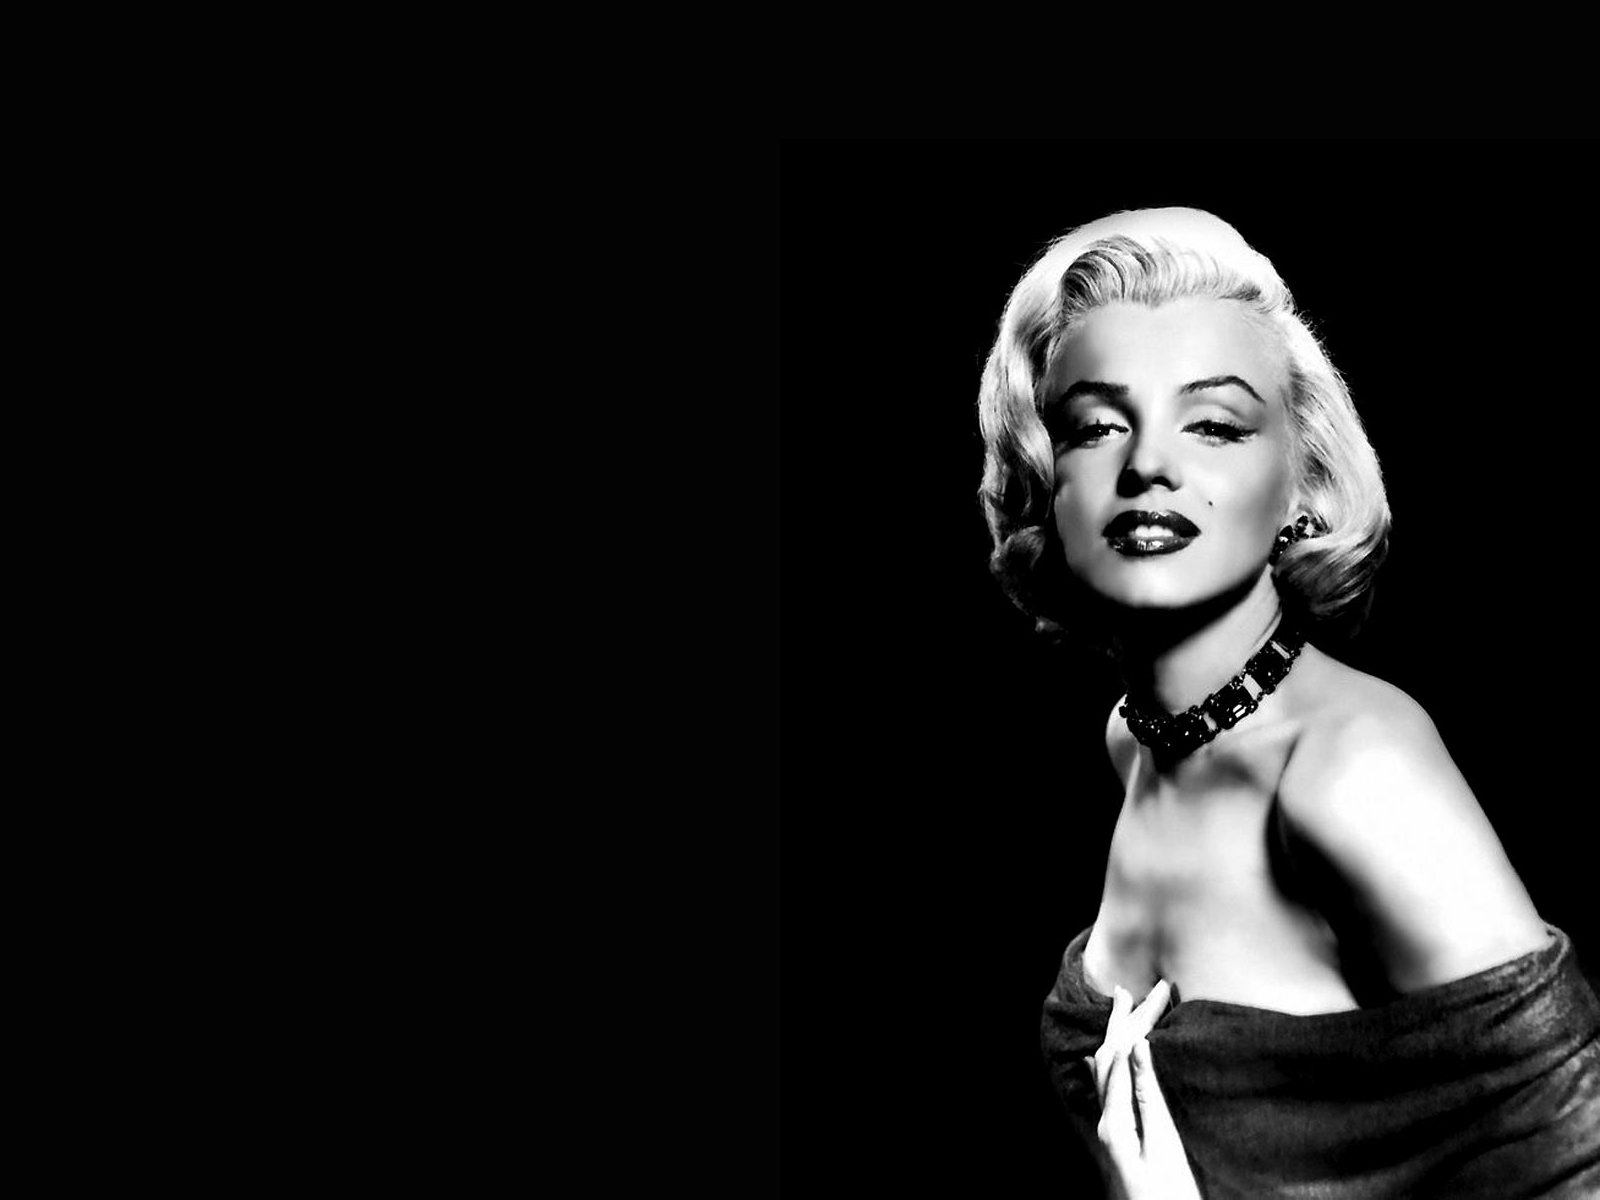 Marilyn Monroe Wallpapers Hd For Desktop Backgrounds